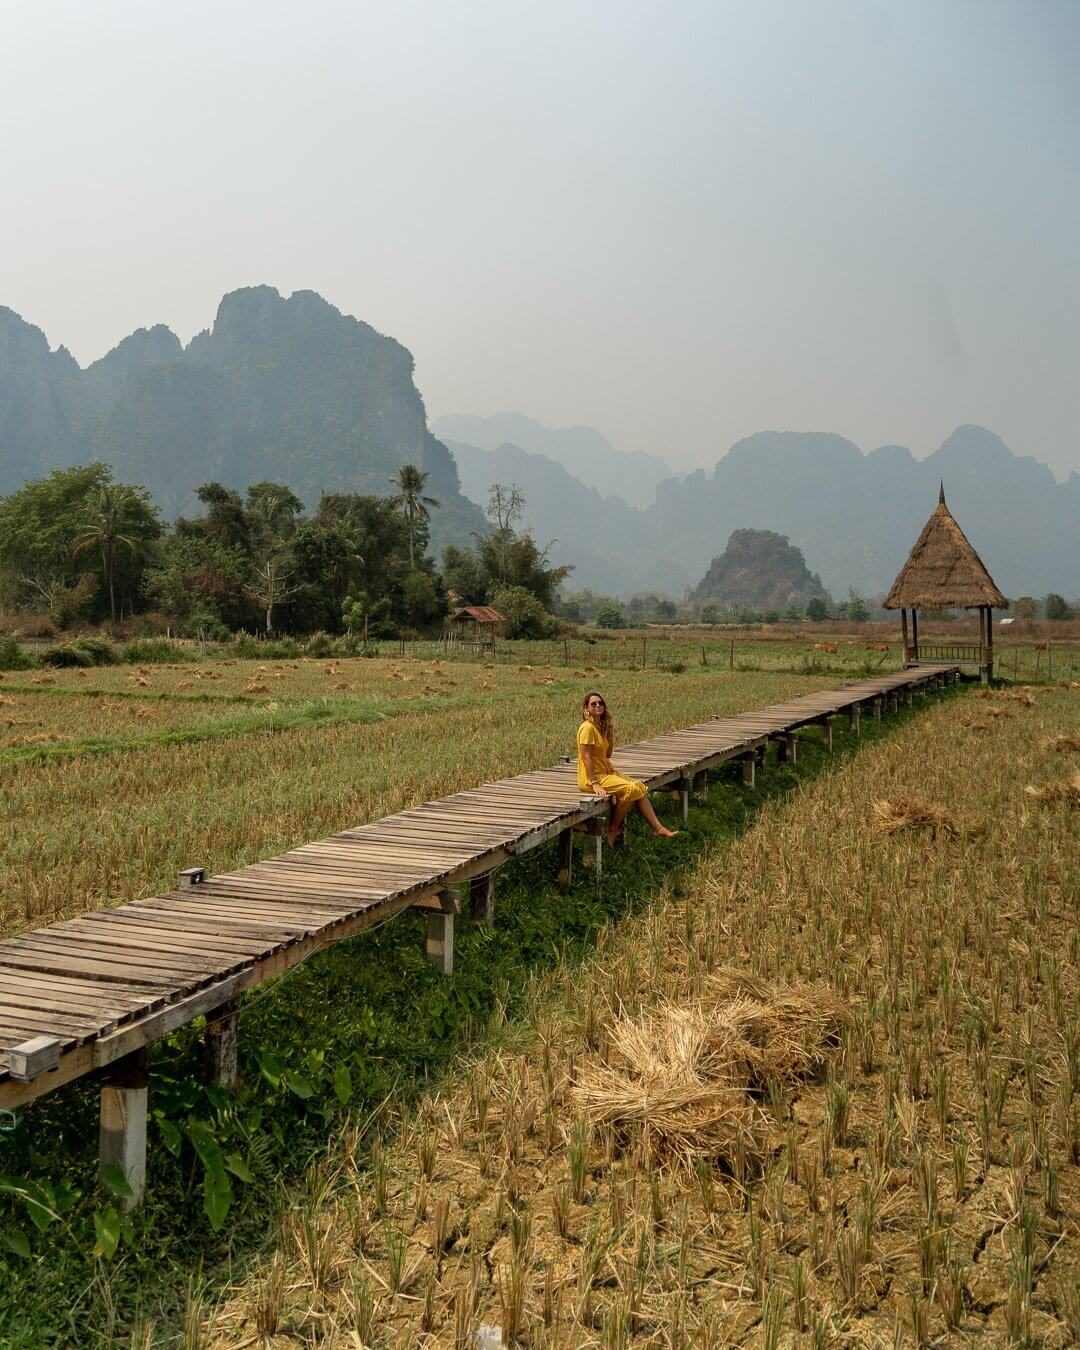 Girl sitting on the wooden boardwalk over the rice terraces in Vang Vieng, Laos